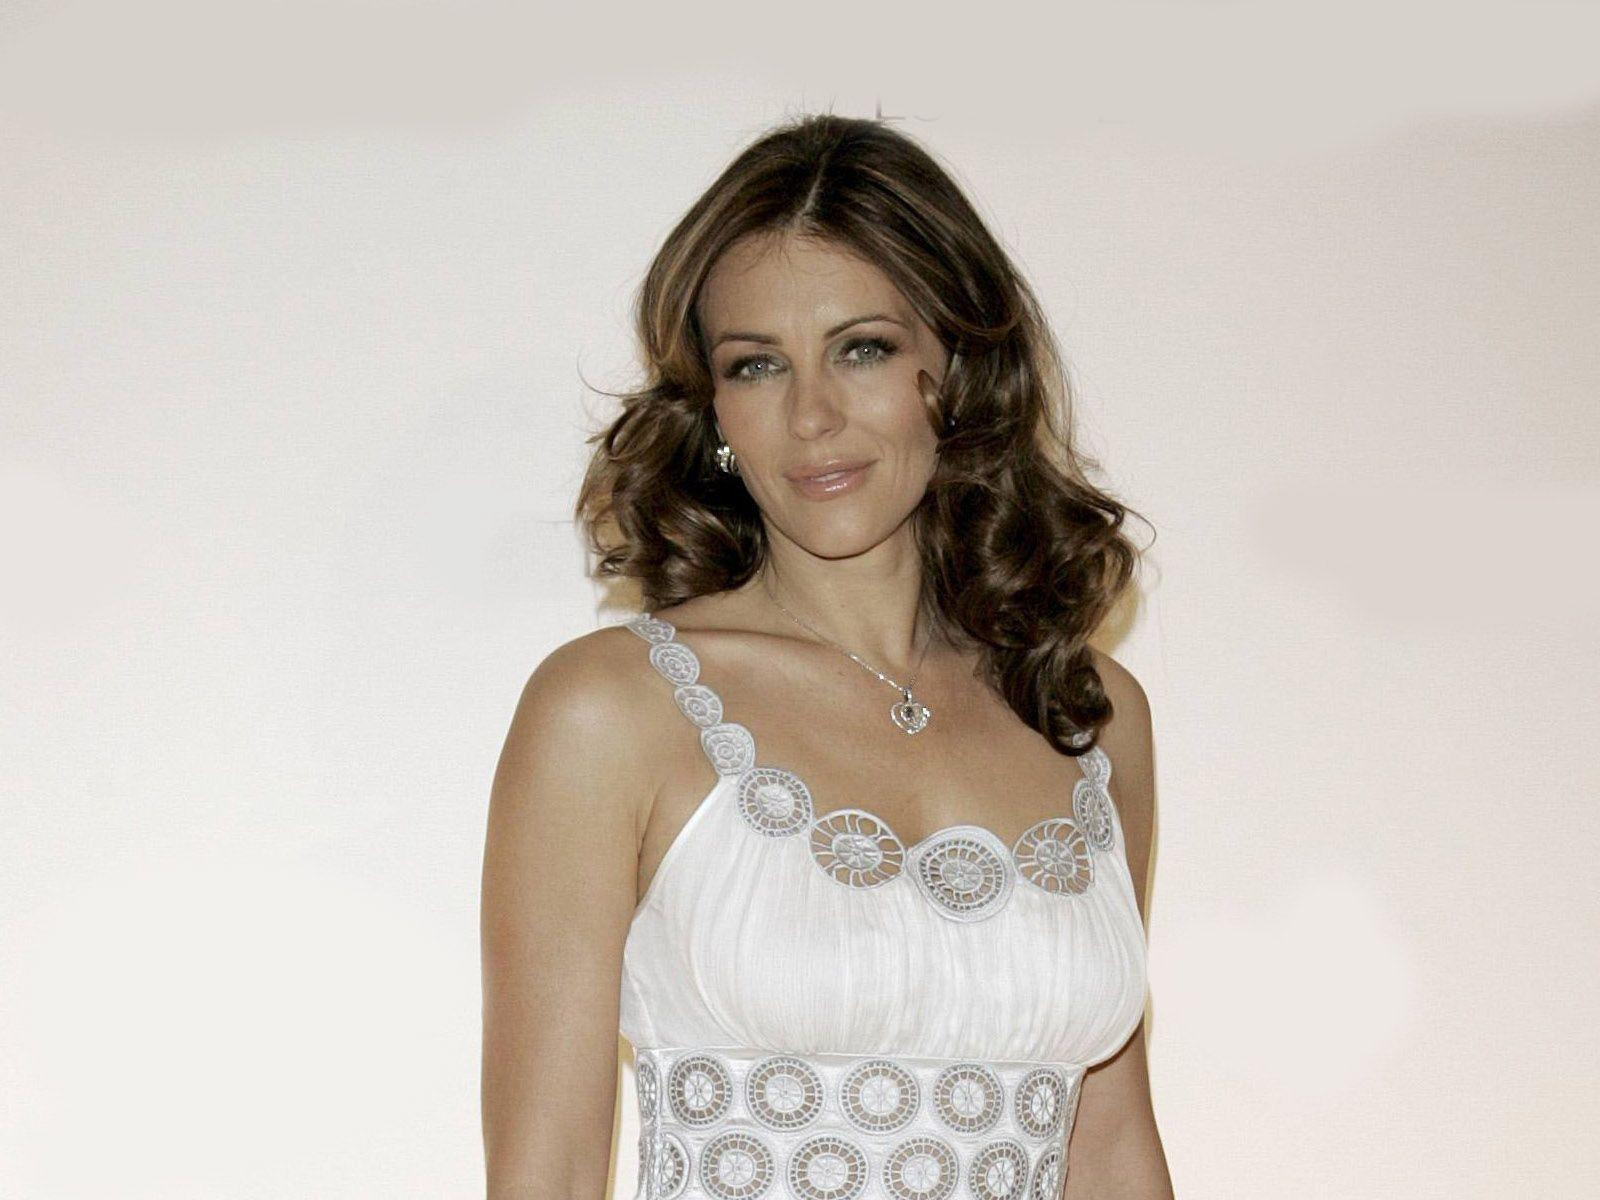 Elizabeth Hurley Wallpaper Free HD Backgrounds Images Pictures